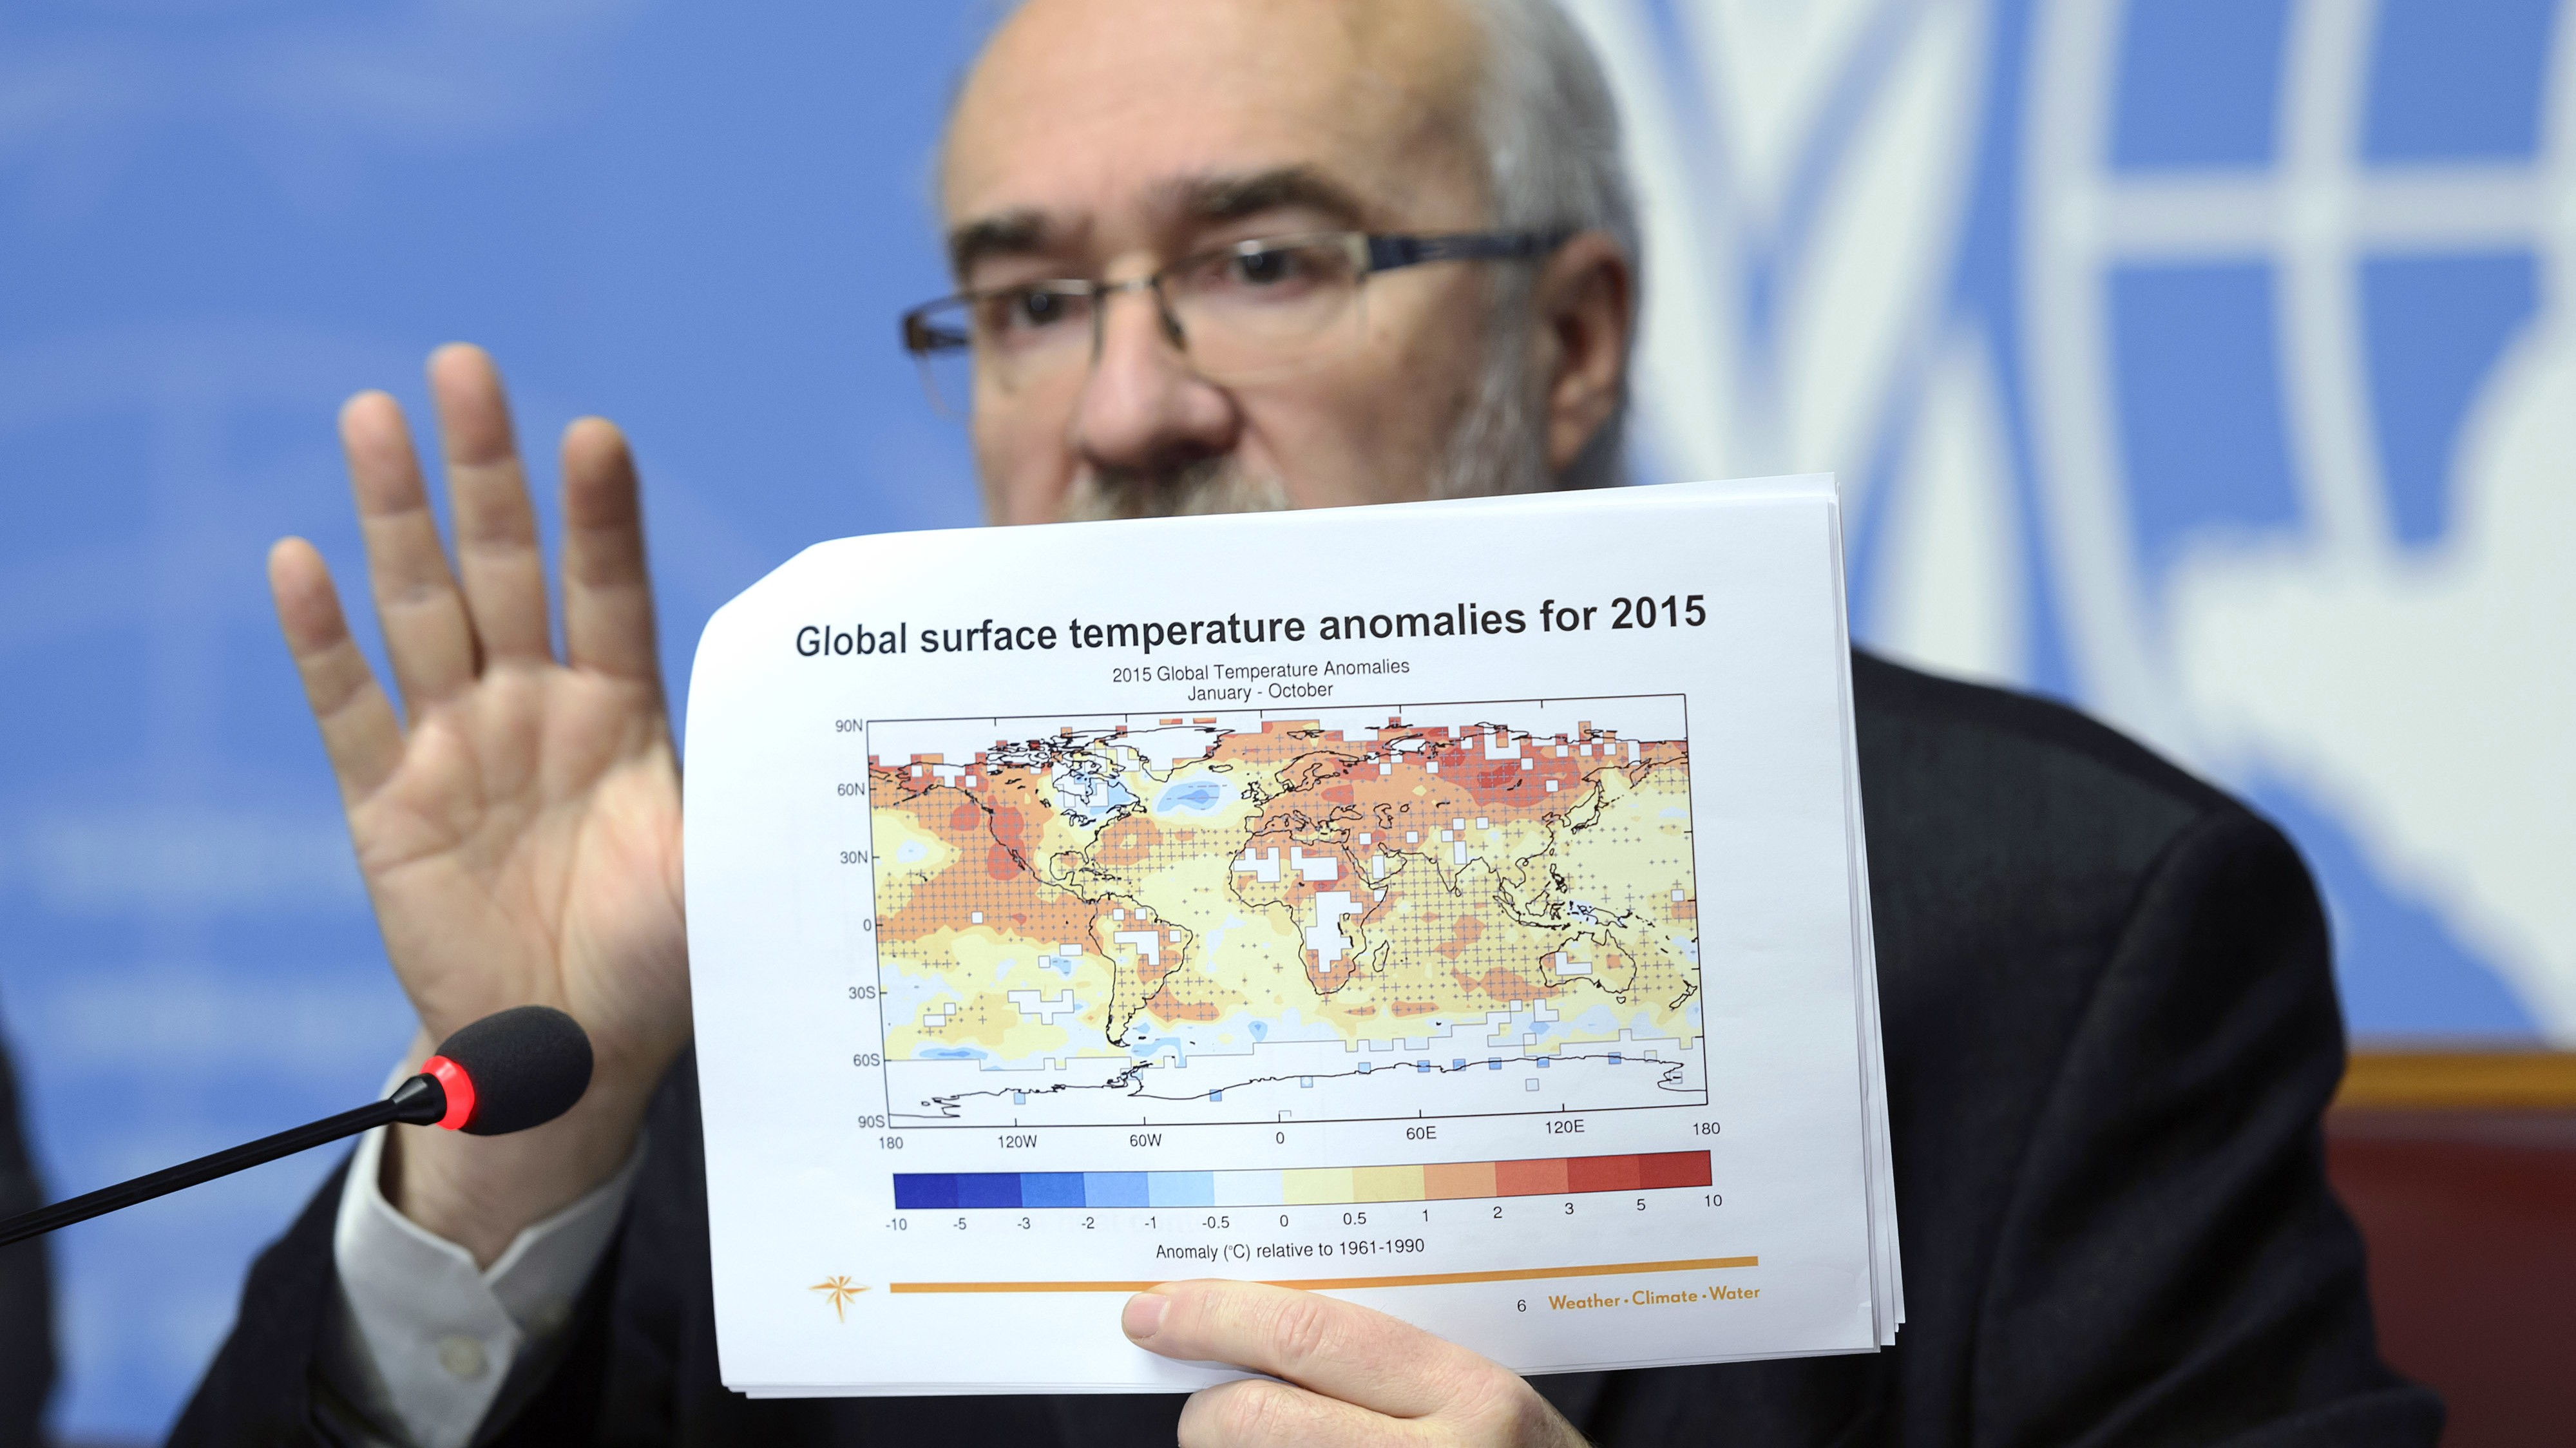 Shocker: 2015 Is Going to Be the Hottest Year on Record